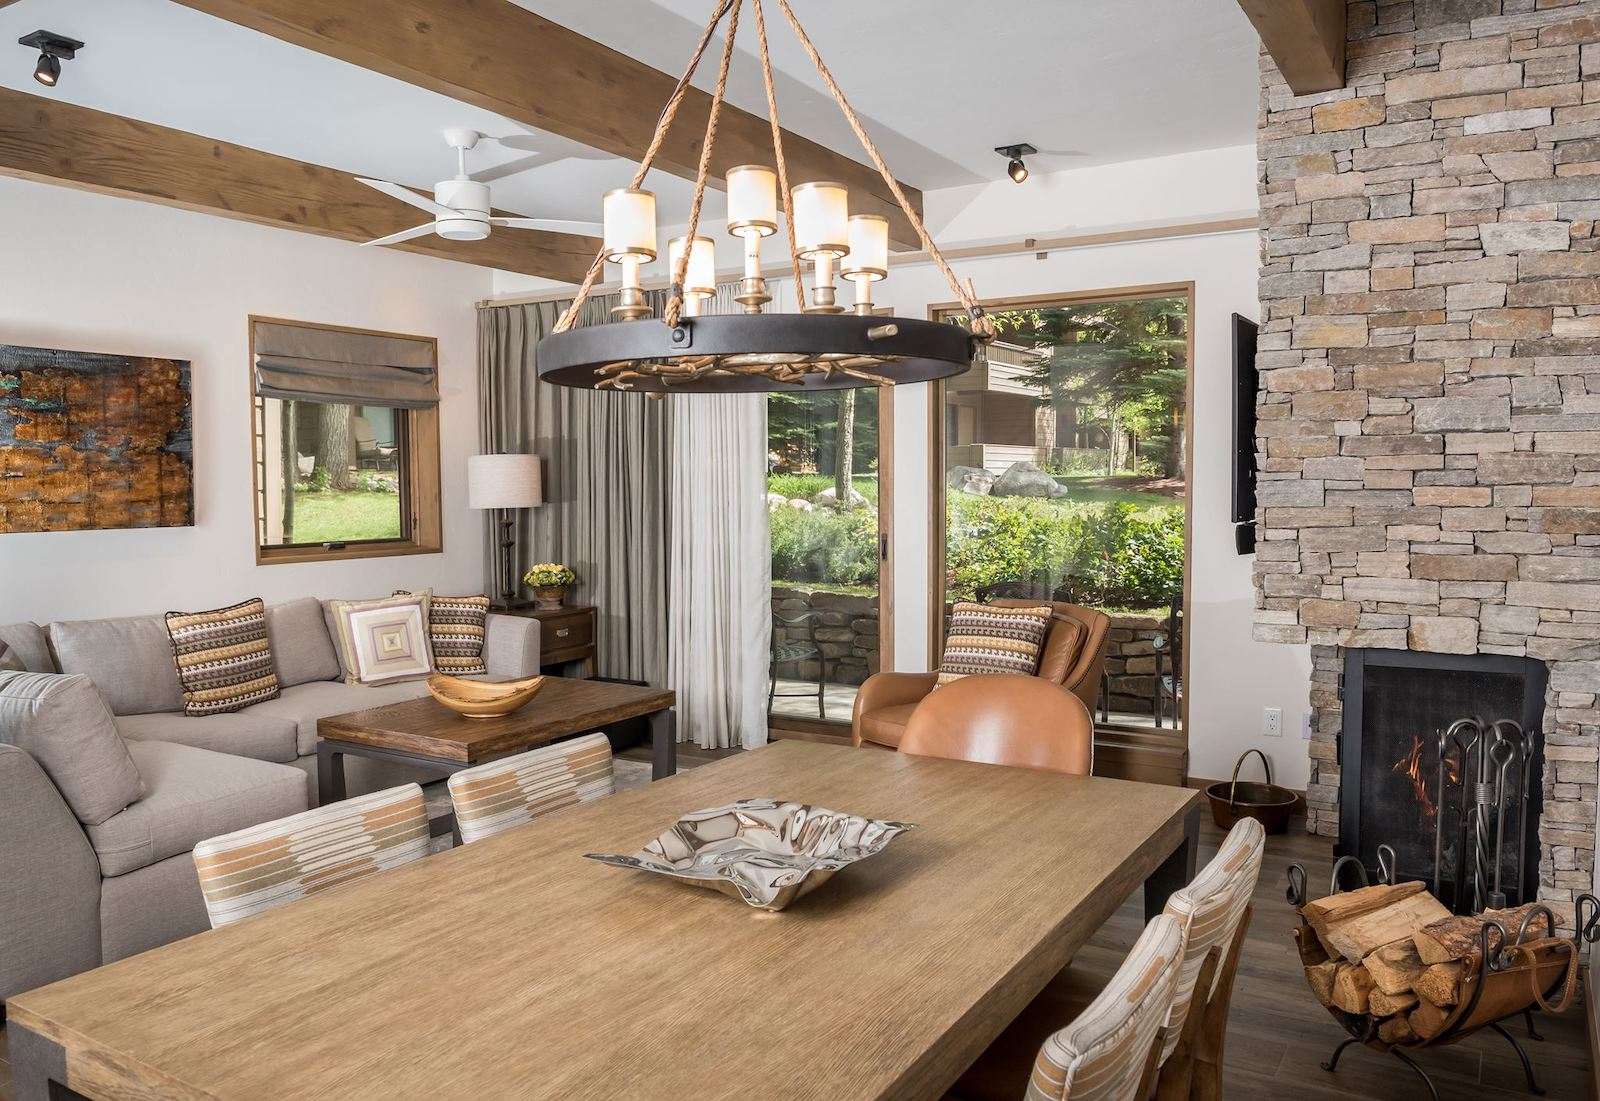 Image of a dining room in one of the suites at The Gant in Aspen, Colorado